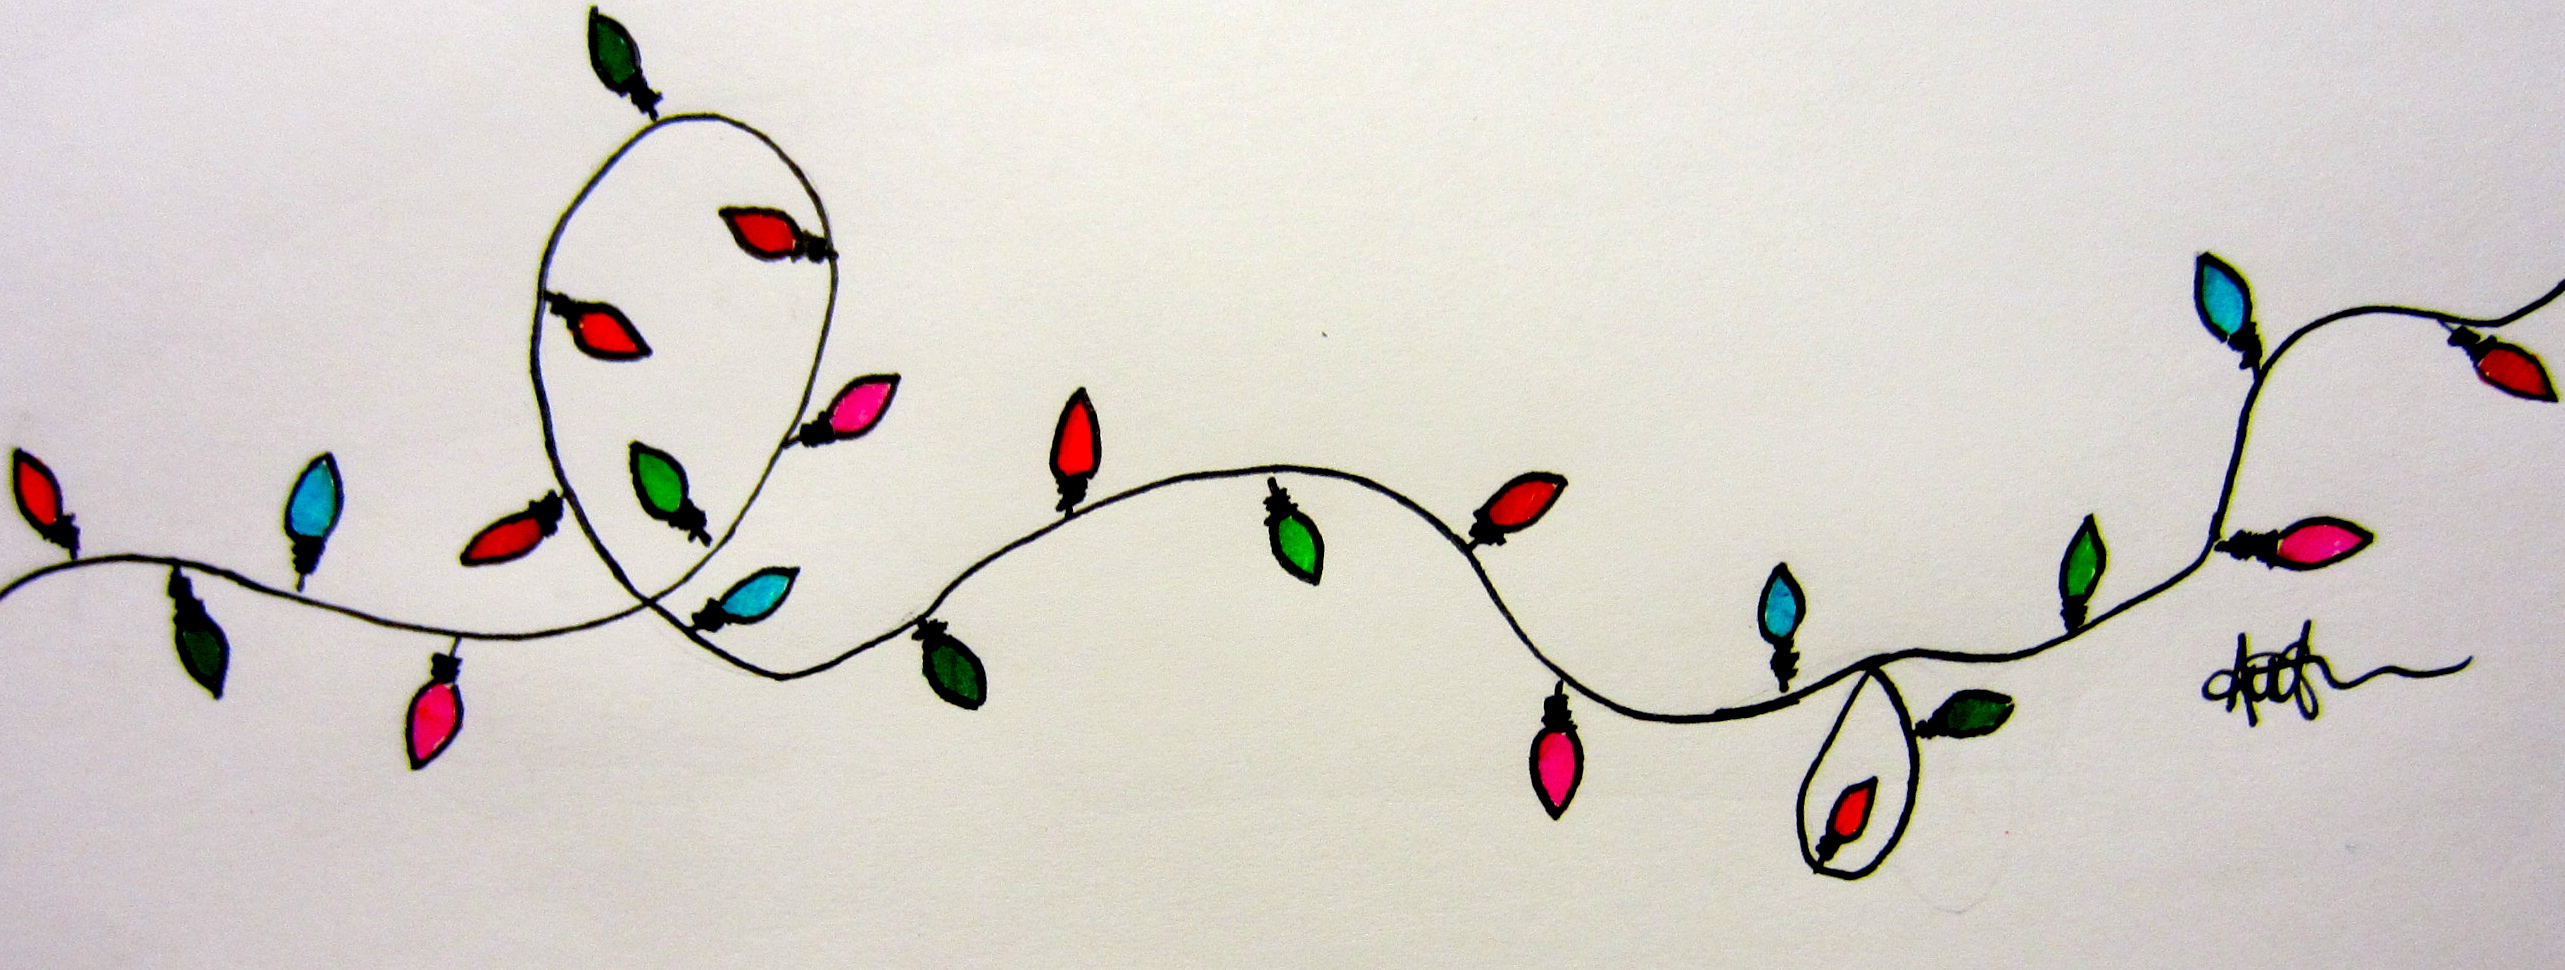 2565x970 Best Photos Of Christmas Lights Drawing How To Draw, Christmas